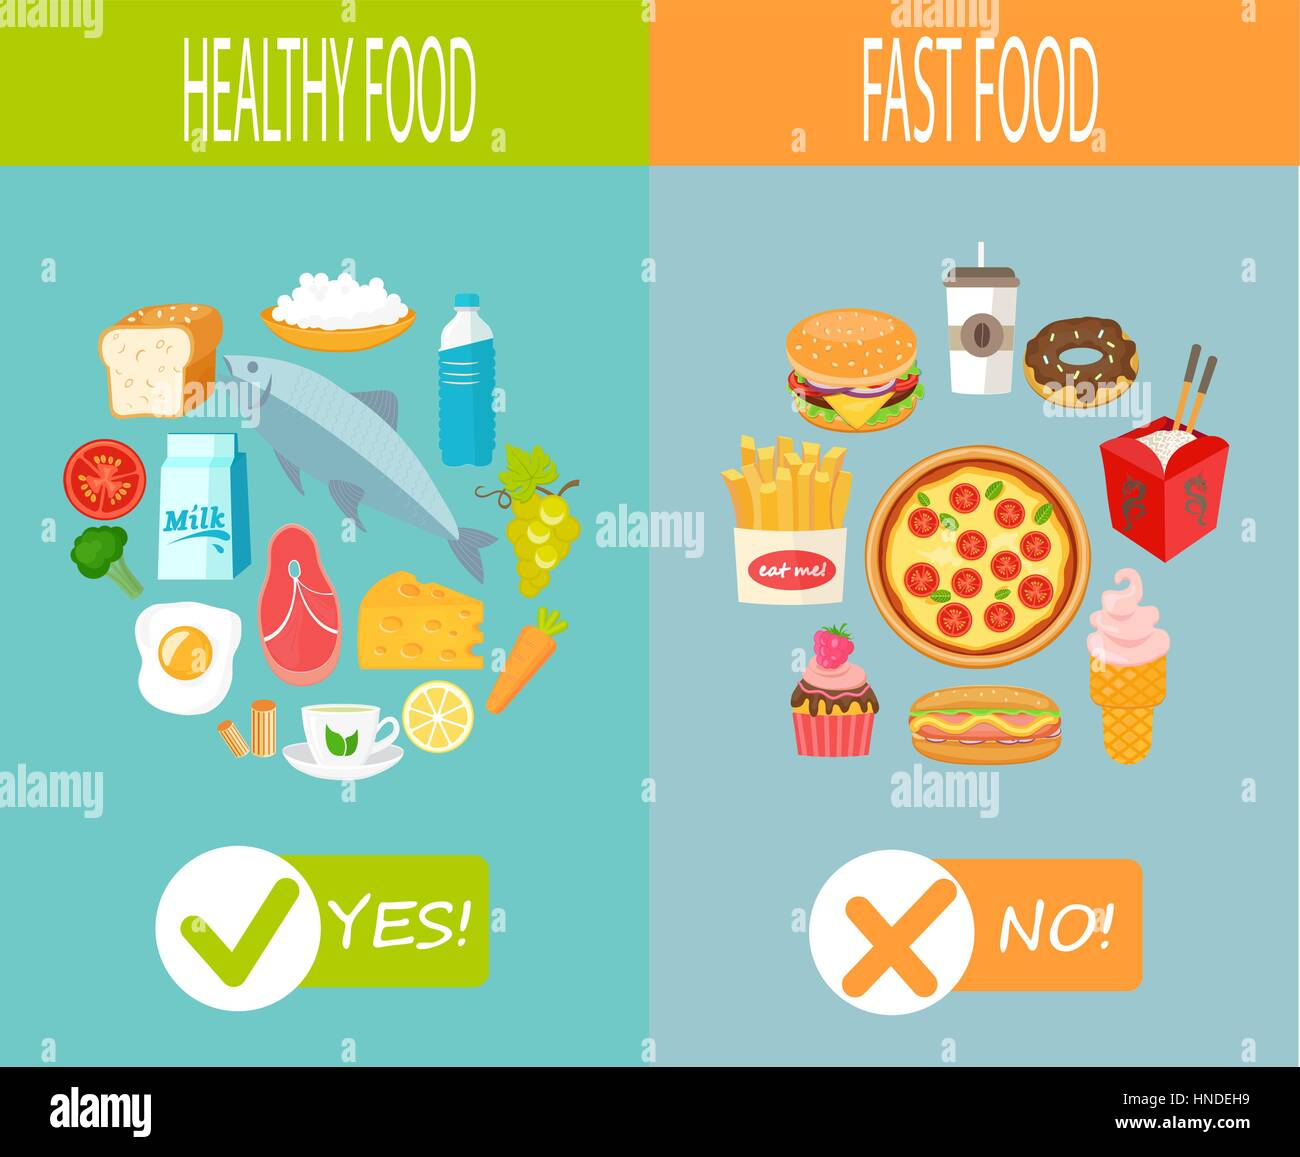 Fast Food Vs Healthy Food Nutrition